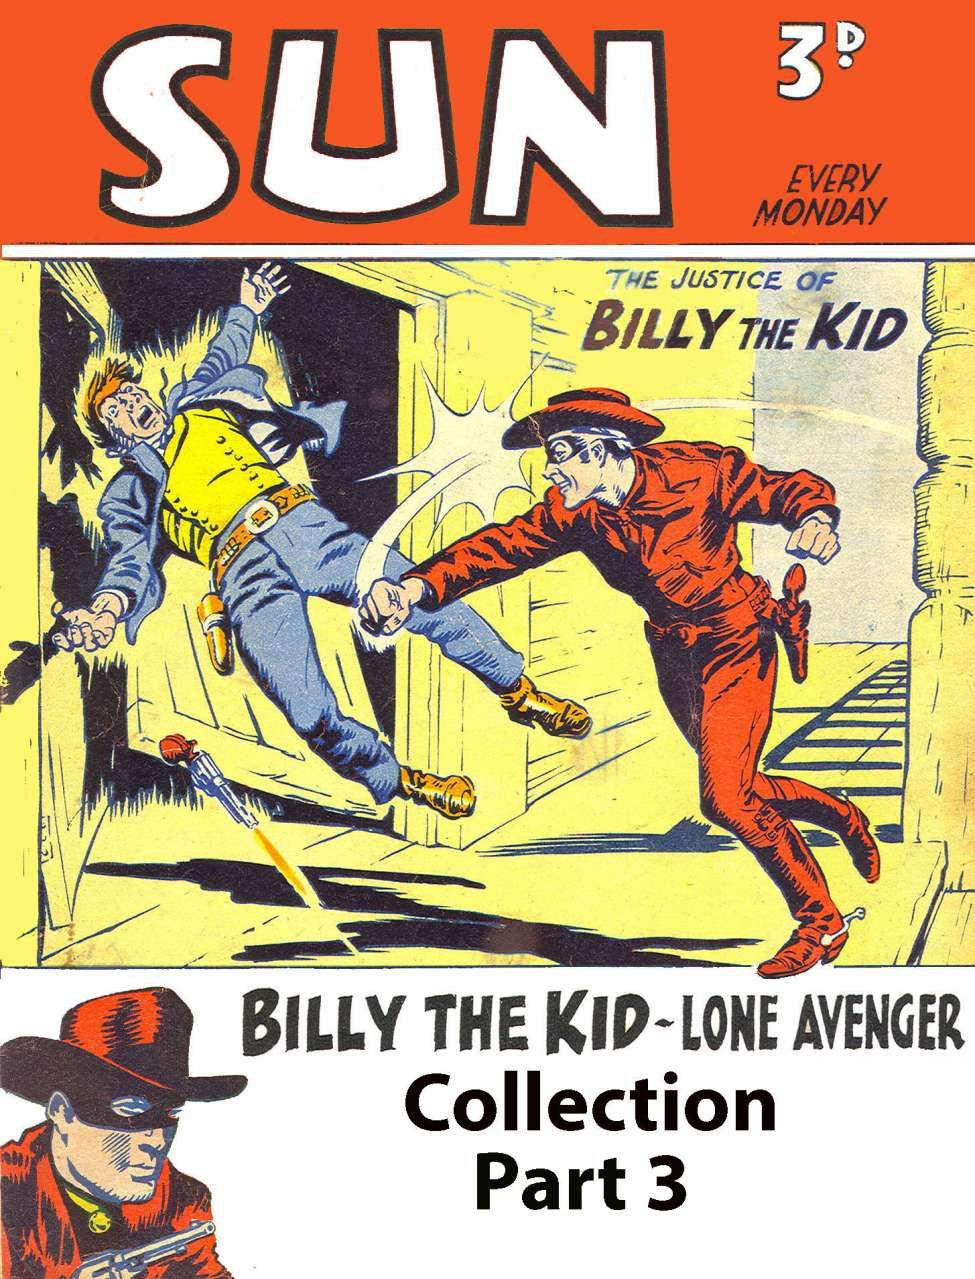 Comic Book Cover For Billy the Kid (UK) SUN Collection Pt.3